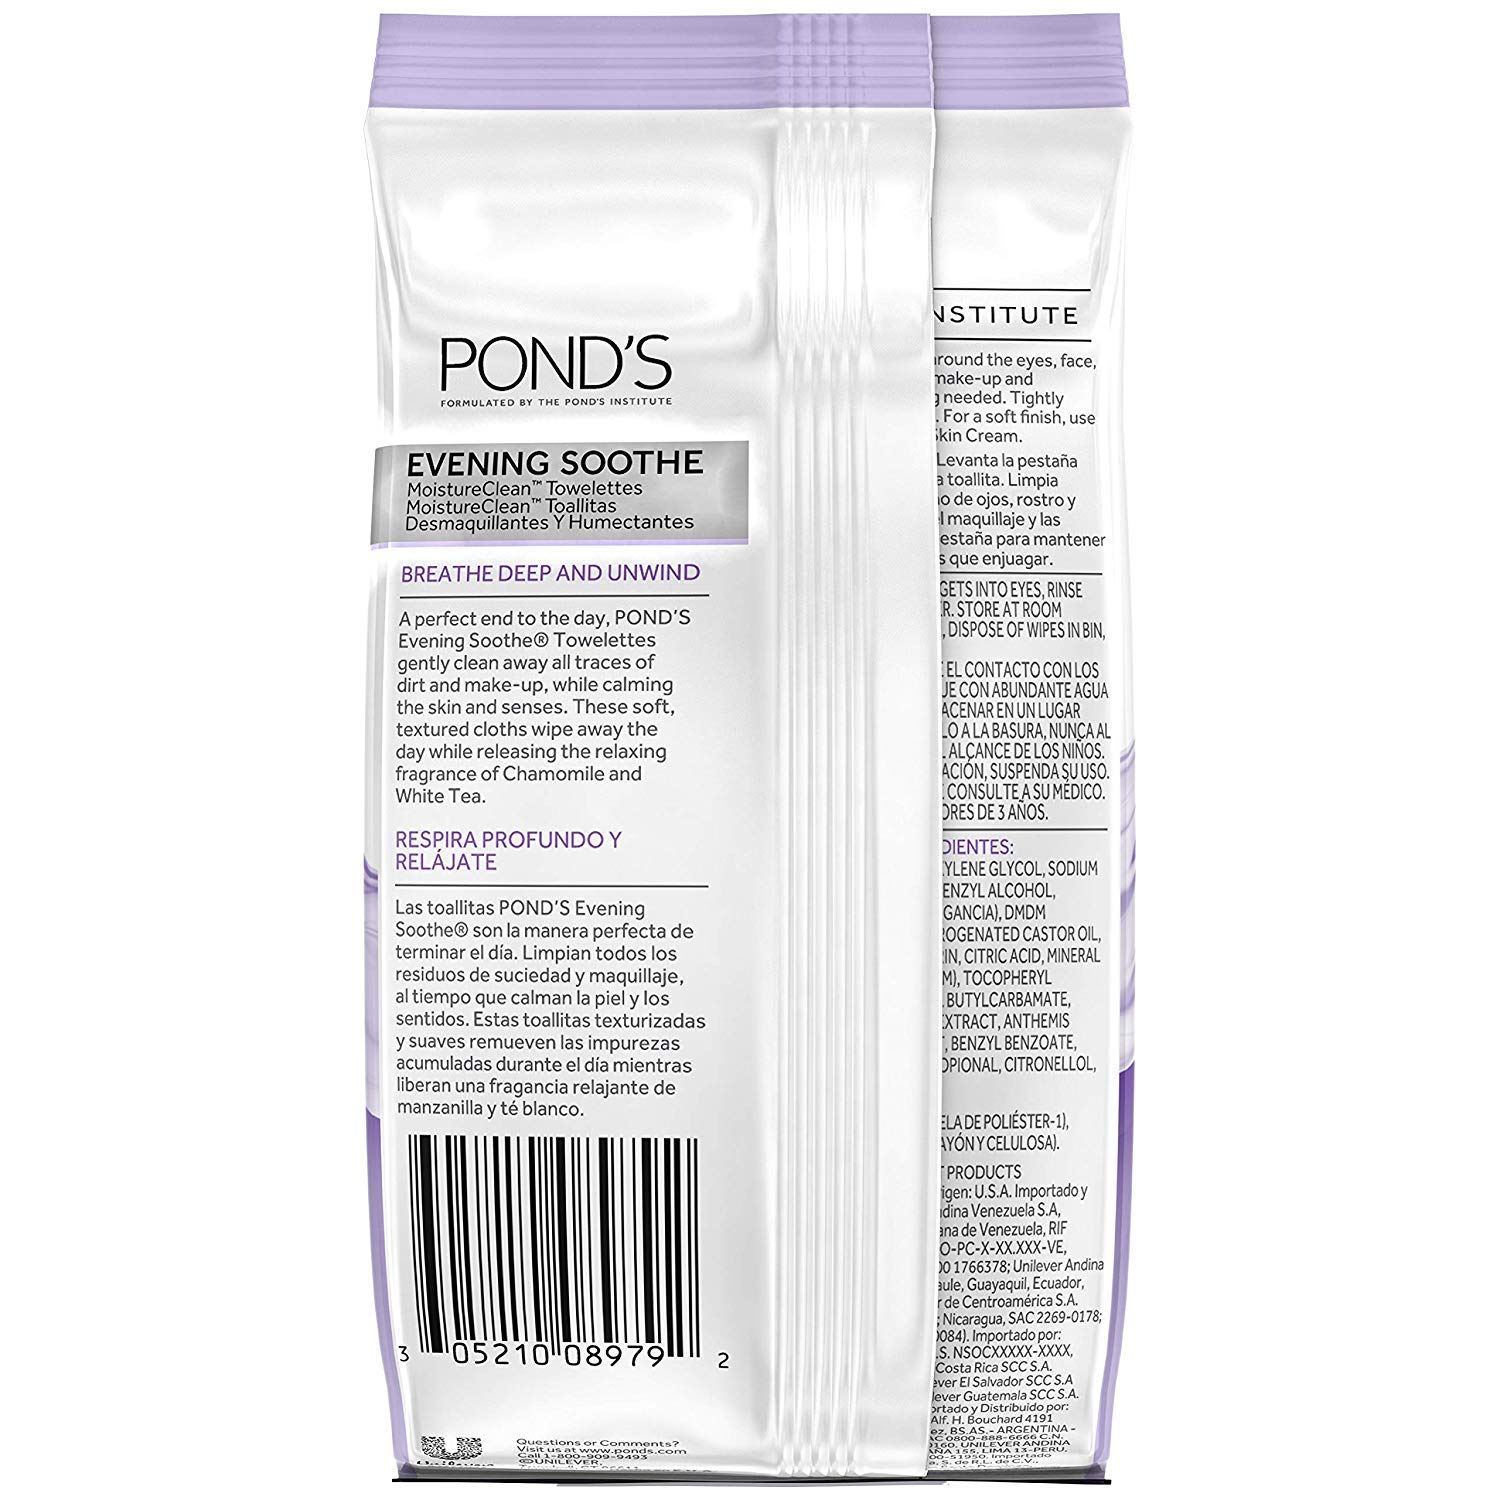 Amazon.com: Ponds Evening Soothe Wet Cleansing Towelettes with Chamomile and White Tea, 28 Count (Pack of 2): Beauty